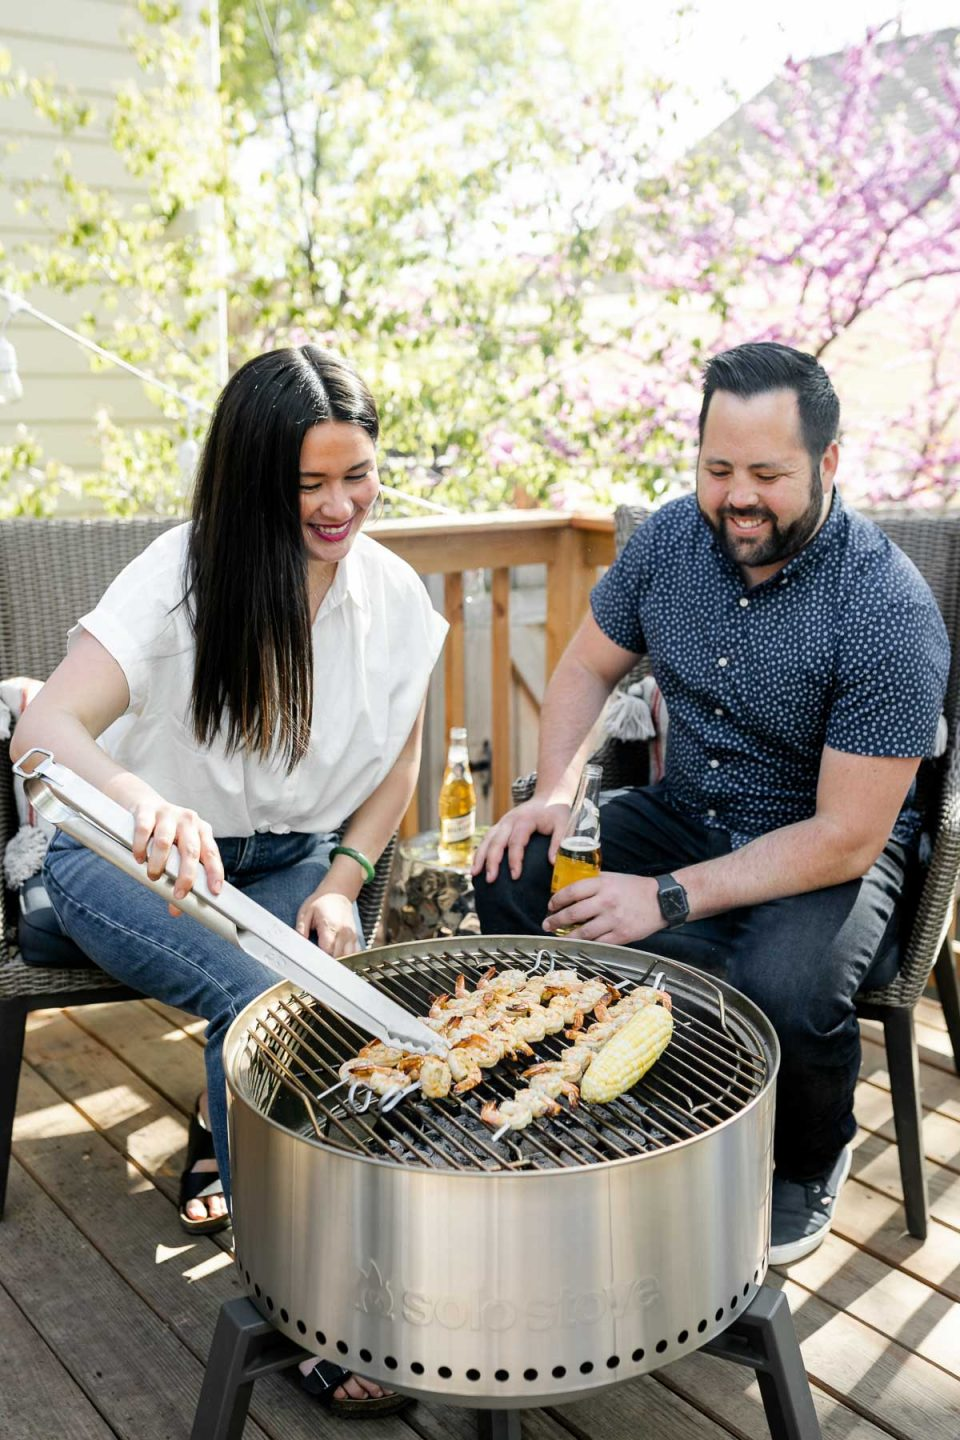 Jess of Plays Well With Butter is grilling grilled shrimp skewers & a cob of sweet corn on a Solo Stove Grill alongside her husband Chris. Both Jess & Chris are seated behind the grill looking at the grill, smiling, while Chris holds a beer in one hand. They are seated outside on their deck.